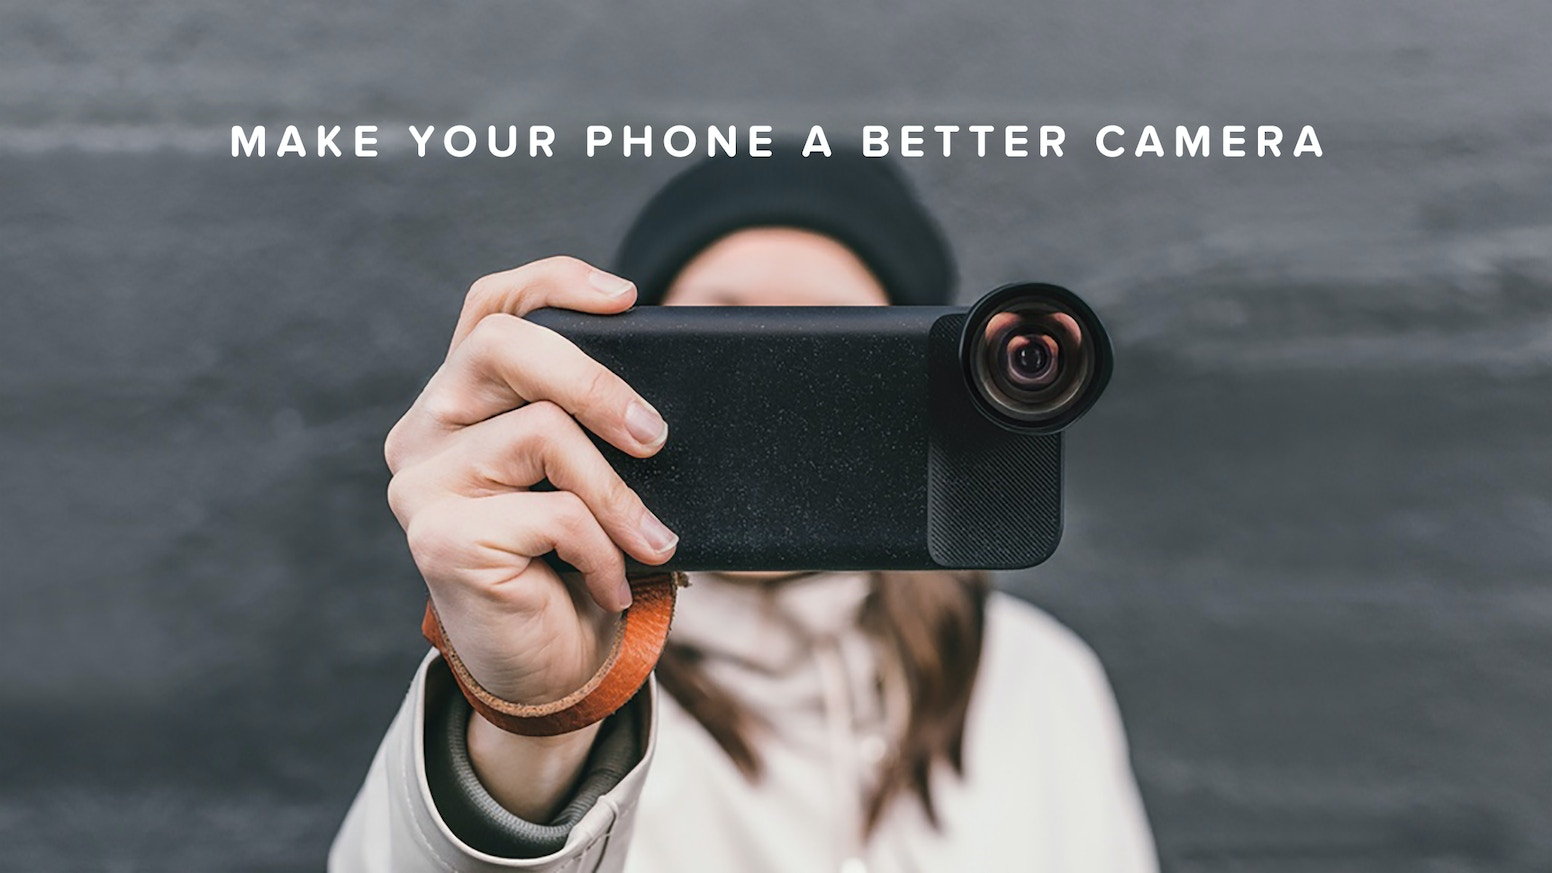 The World's First Battery Case, Photo Case, and Cinema Wide Lens for Mobile Photography.